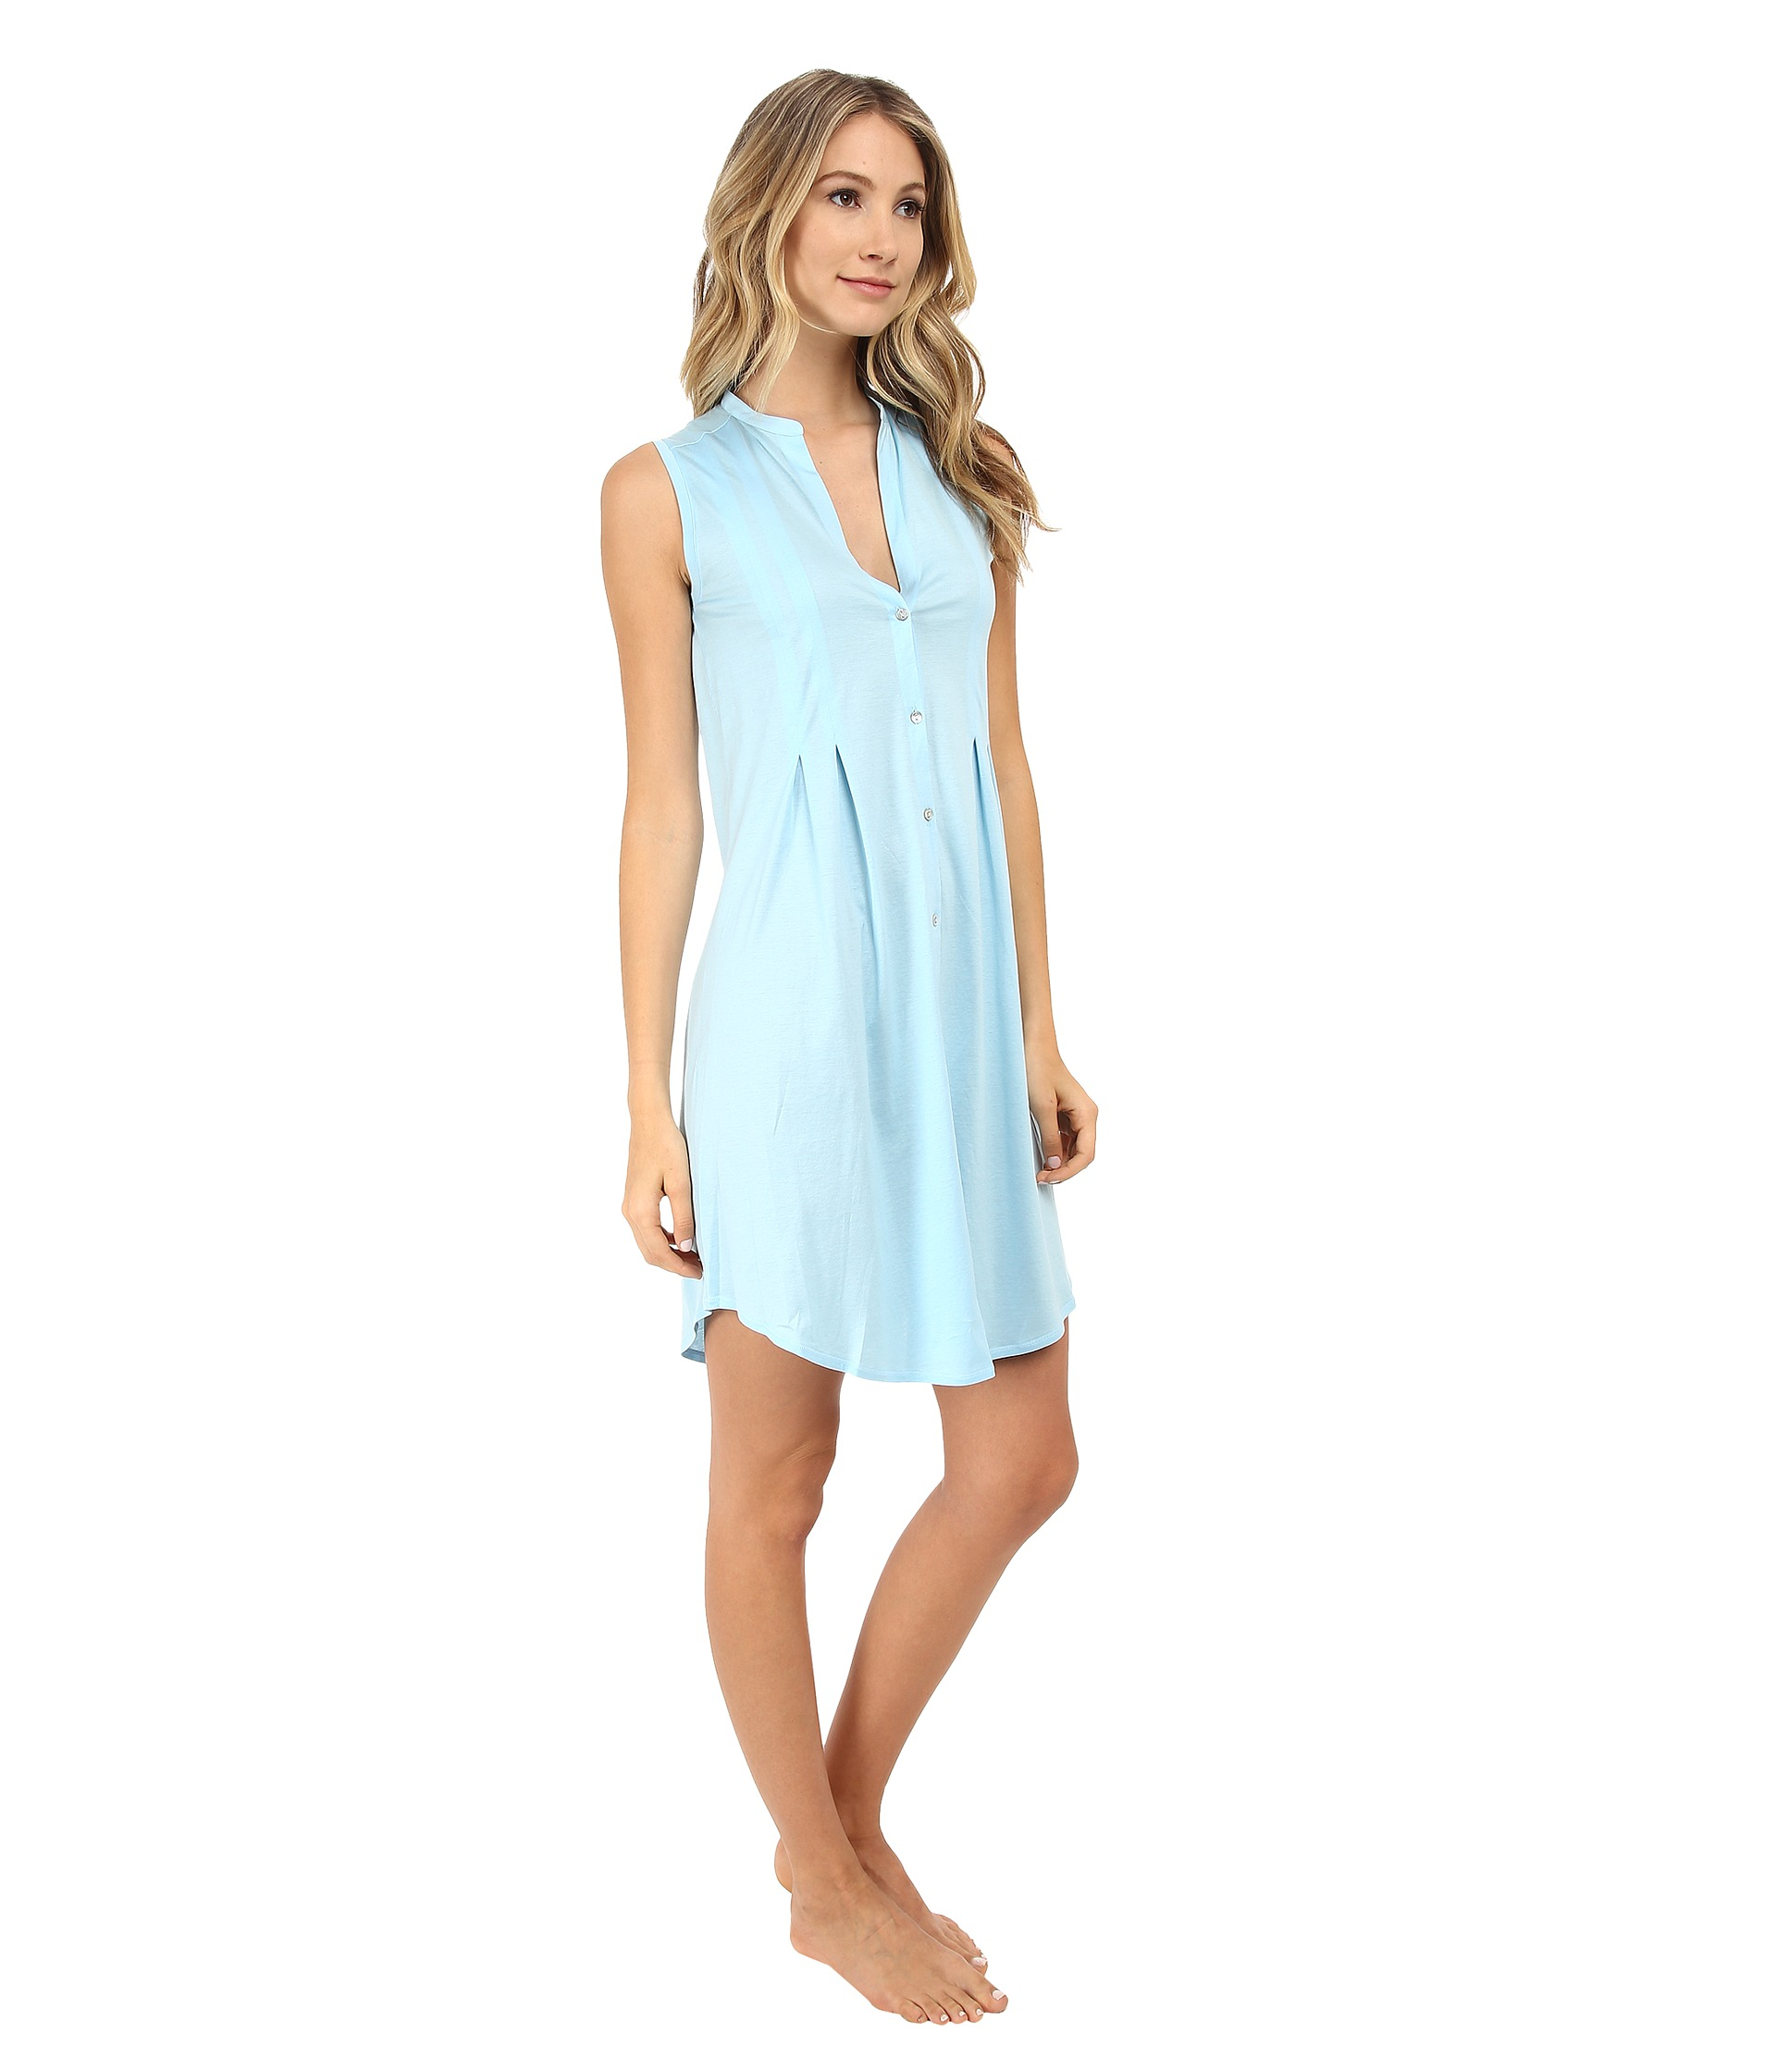 Ultra soft and comfortable fabric, V neck button front nightgown. Ekouaer Women's Sleep Dress Short Sleeve Nightshirt Ultra-Soft Sleepwear Nightgown. by Ekouaer. $ - $ $ 19 $ 21 99 Prime. FREE Shipping on eligible orders. Some sizes/colors are Prime eligible. out of 5 stars